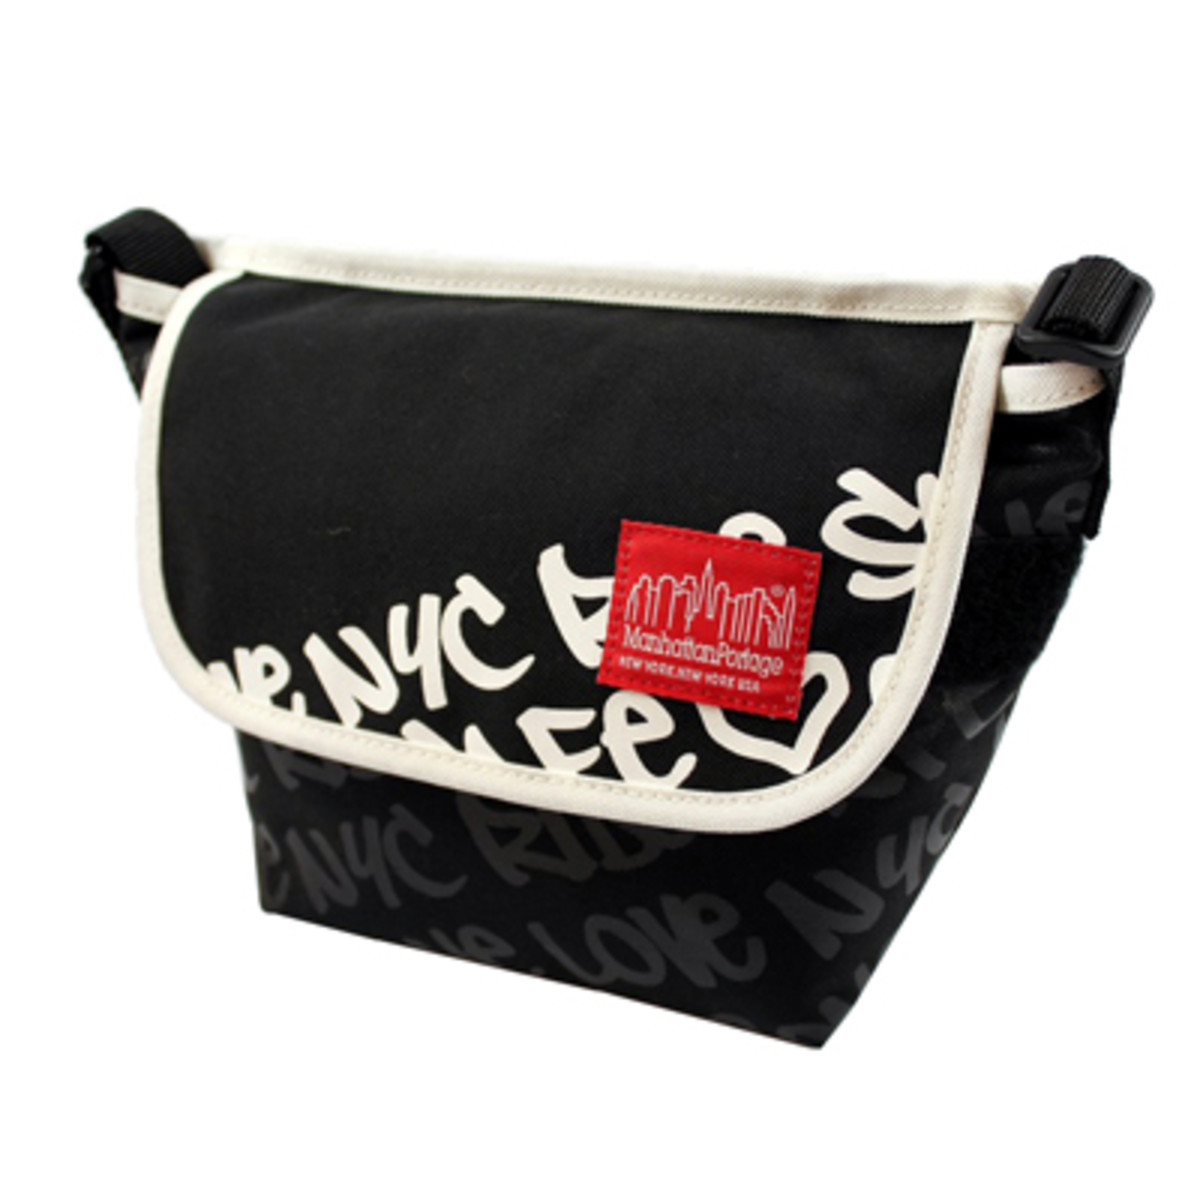 Graphic Message Casual Messenger Bag Small 6